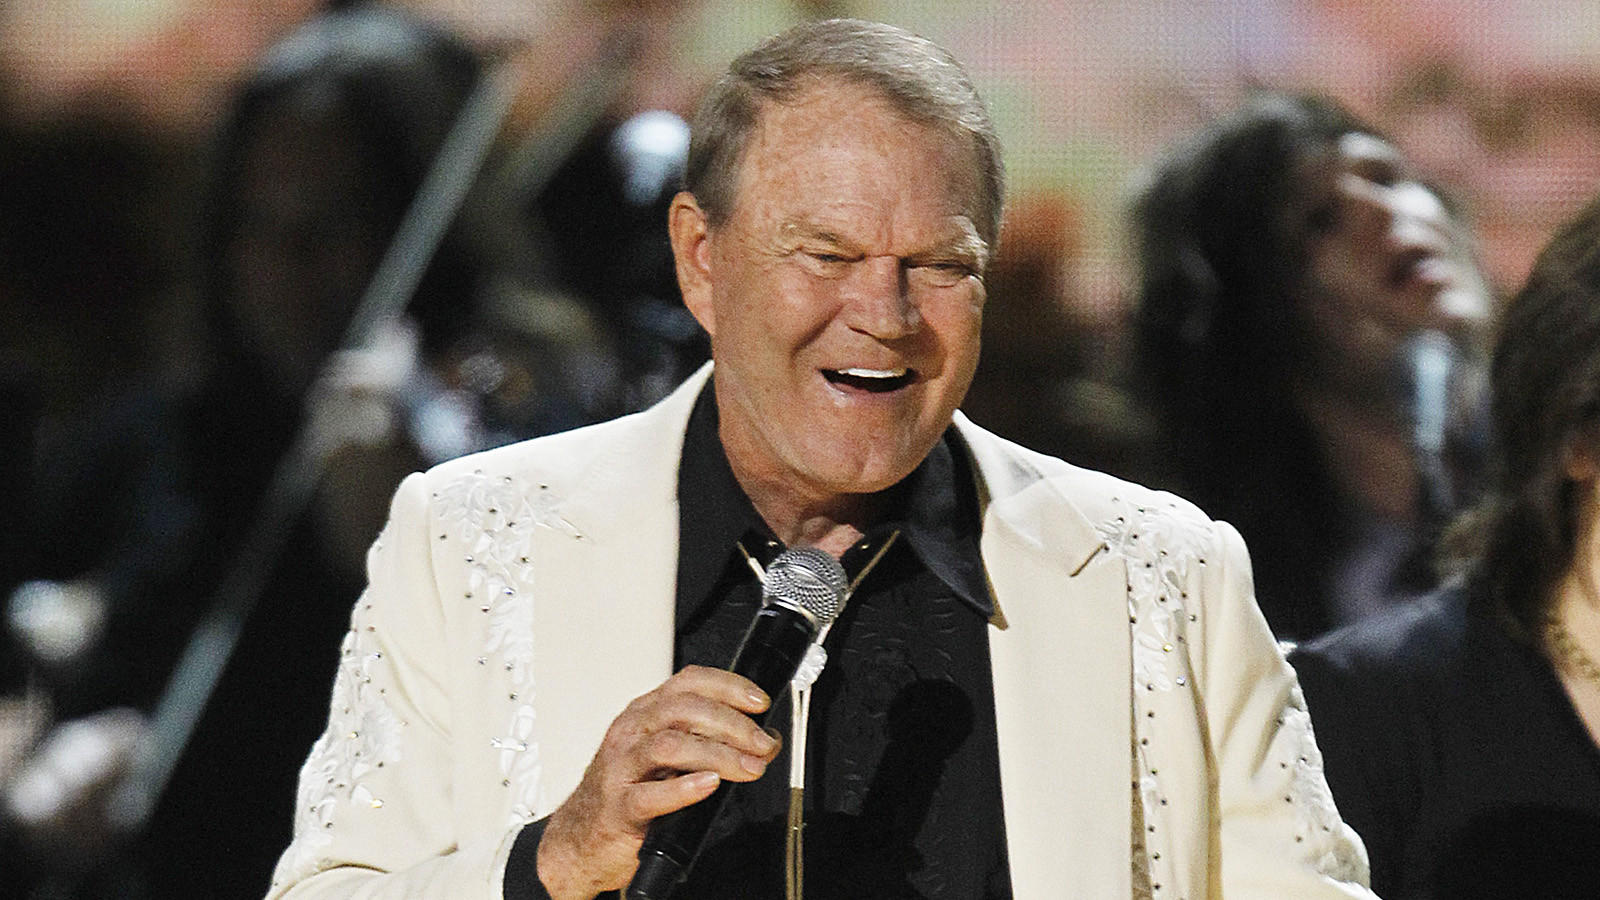 Glen Campbell at the 2012 Grammy Awards. (Robert Gauthier / Los Angeles Times)